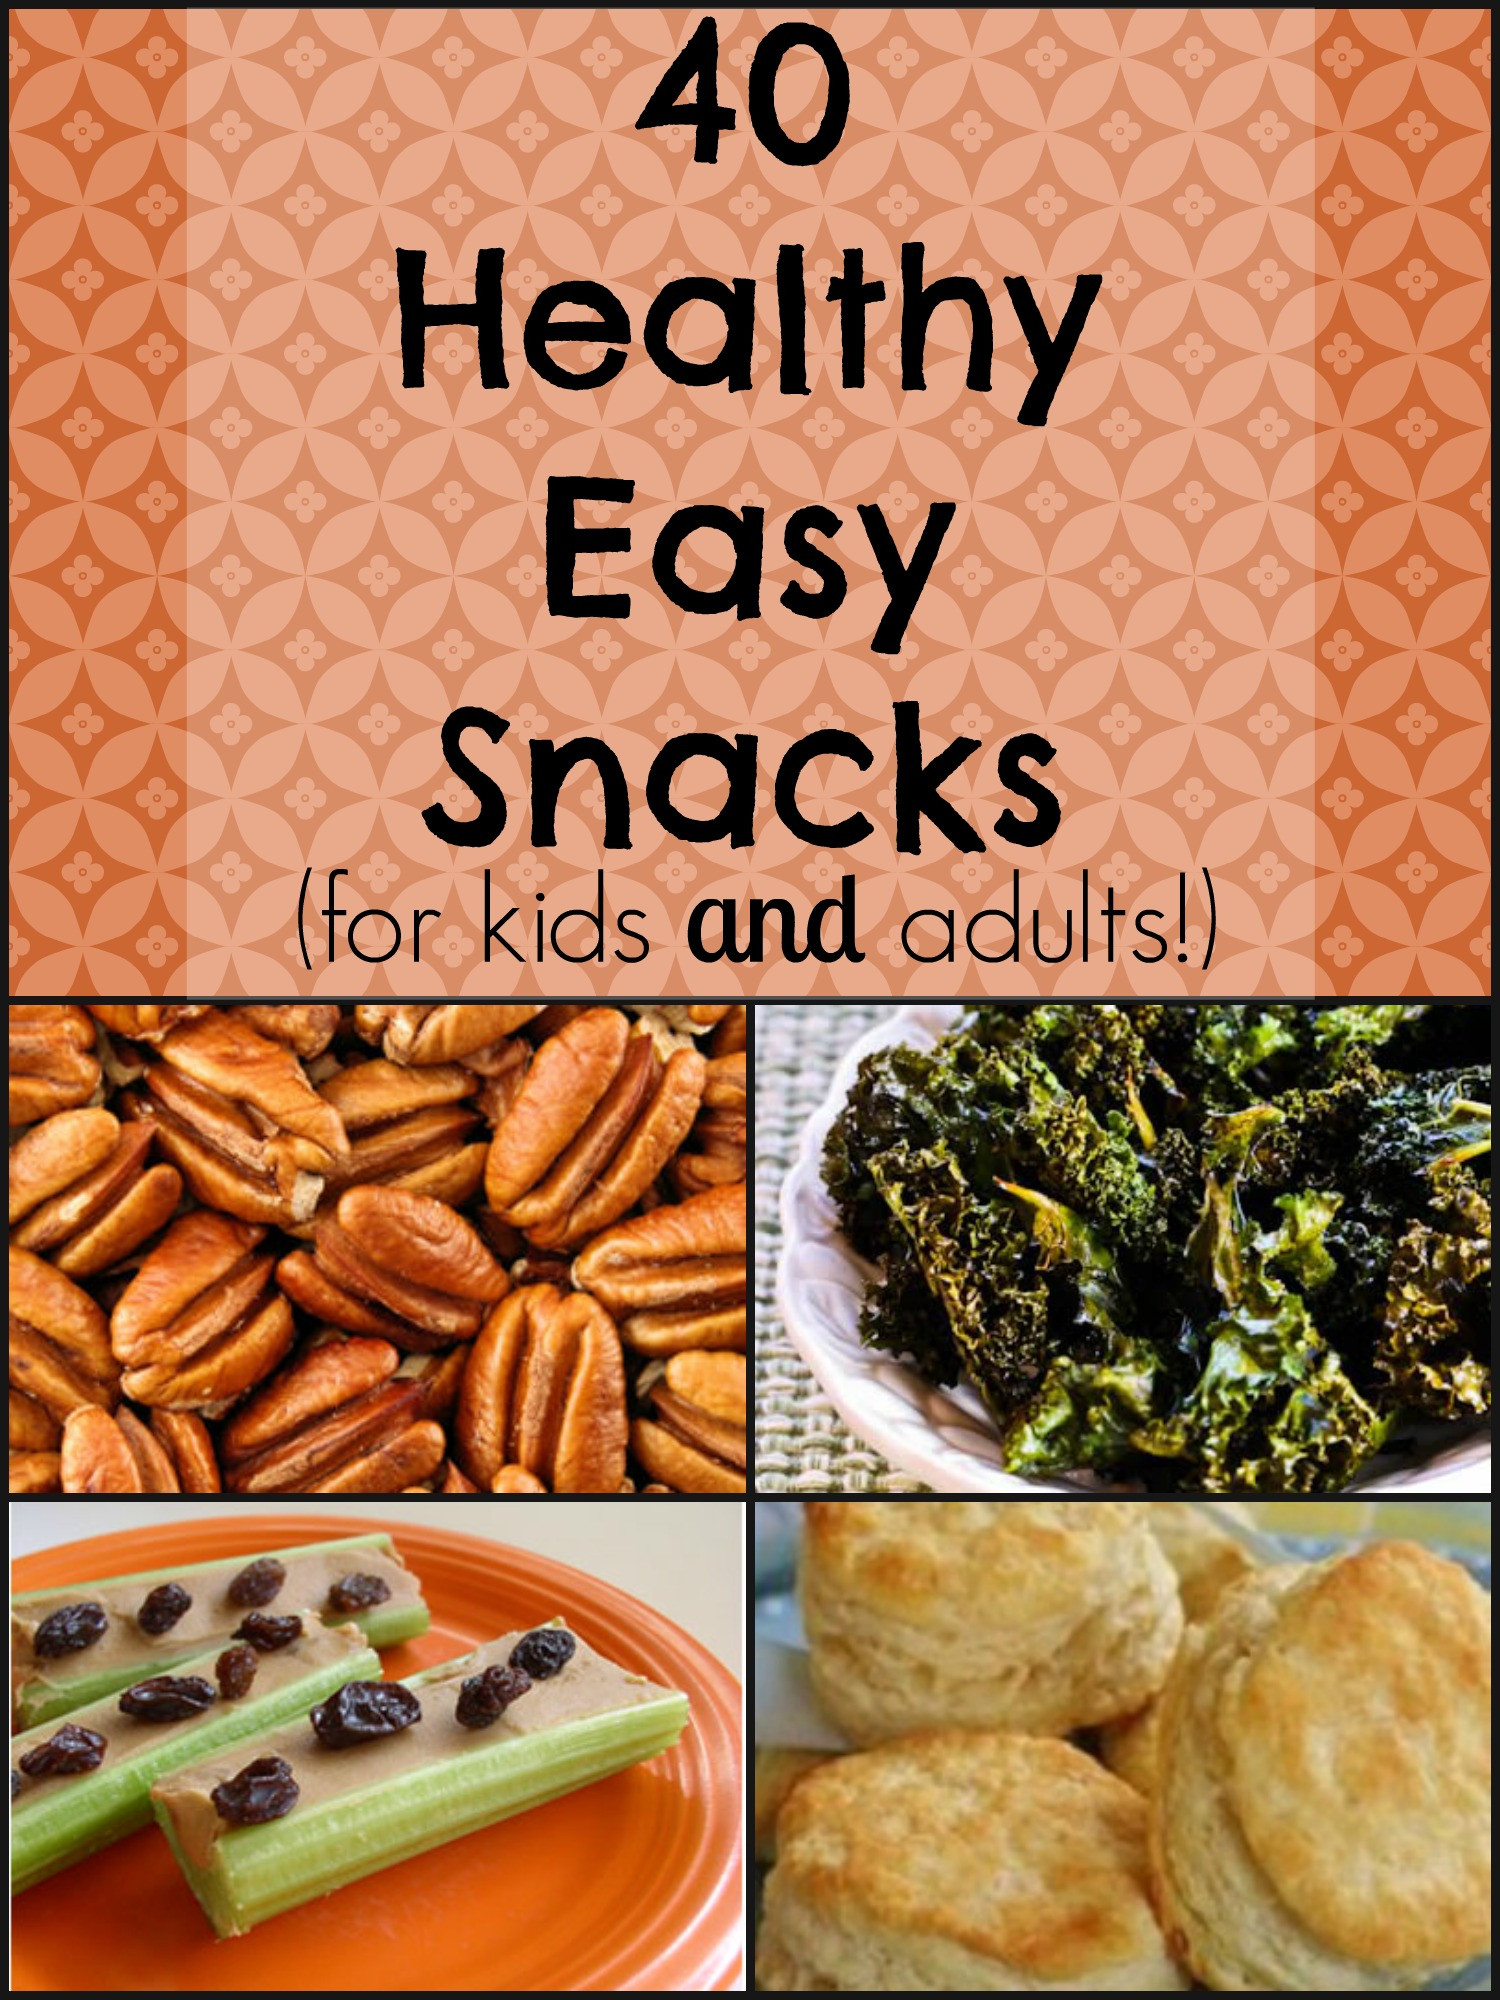 Healthy Snacks For Adults At Work  40 Healthy Easy Snacks for kids and adults